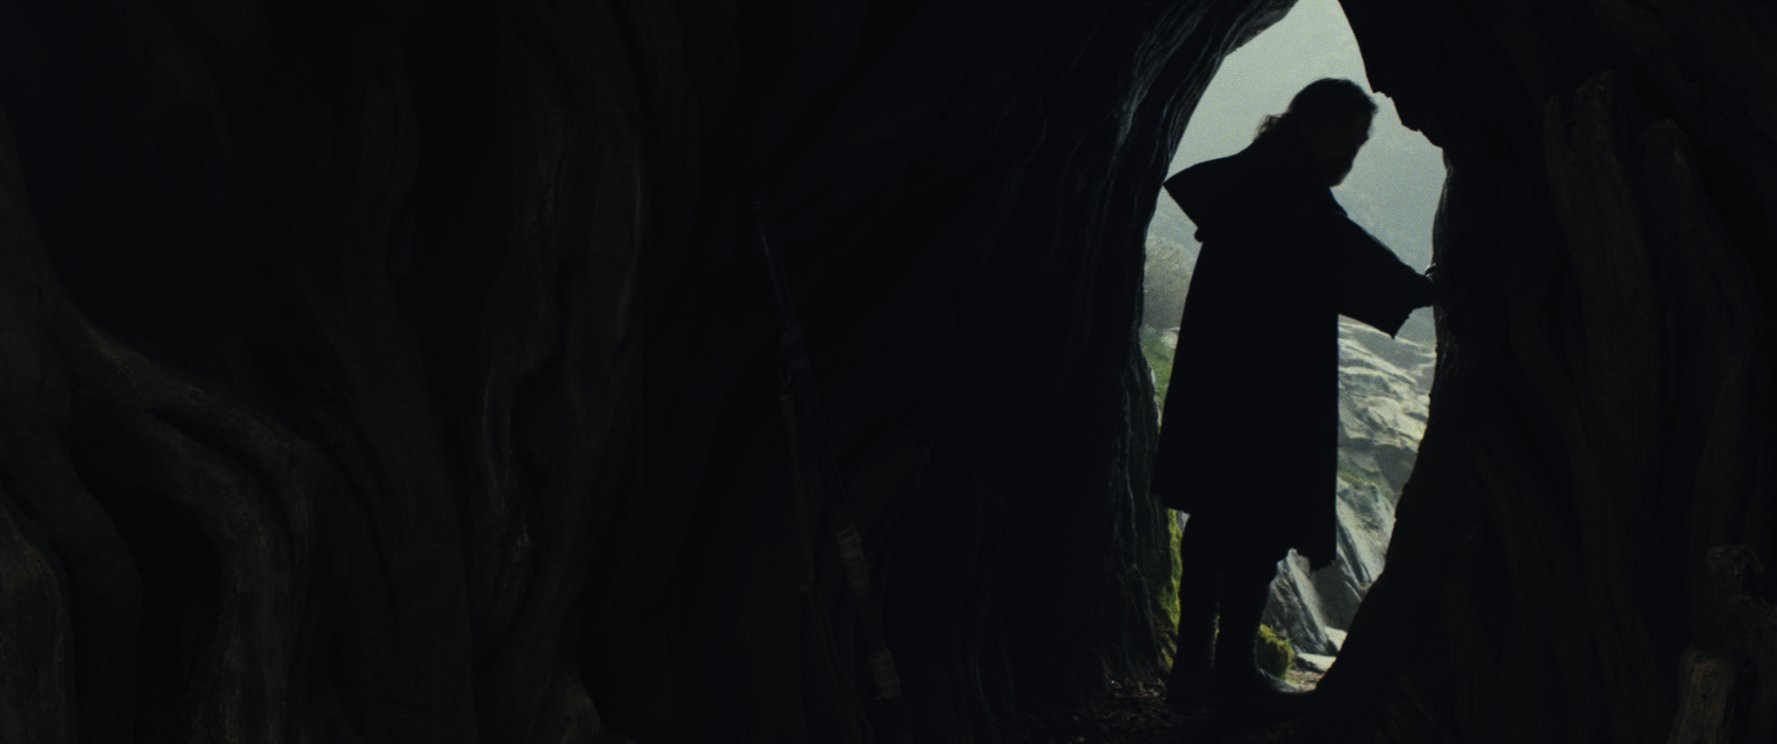 Luke must make a hard decision.. (Photo credit: The Last Jedi by Disney and Lucasfilm)